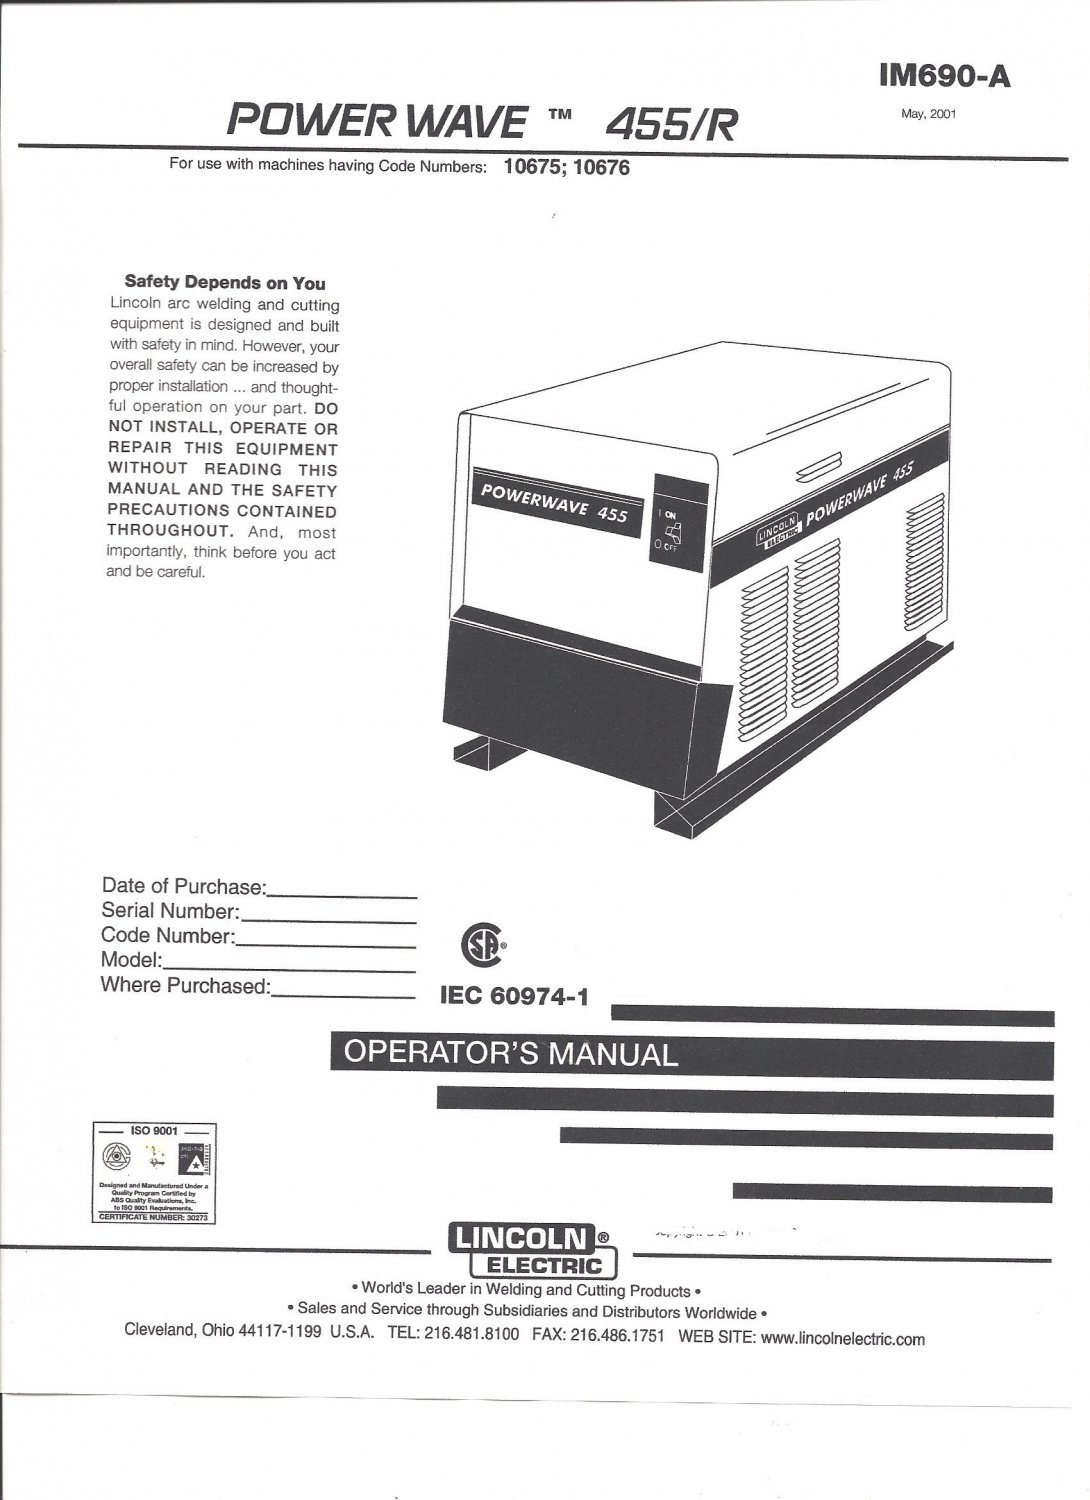 Lincoln Electric POWER WAVE 455/R Welder Operator's Manual